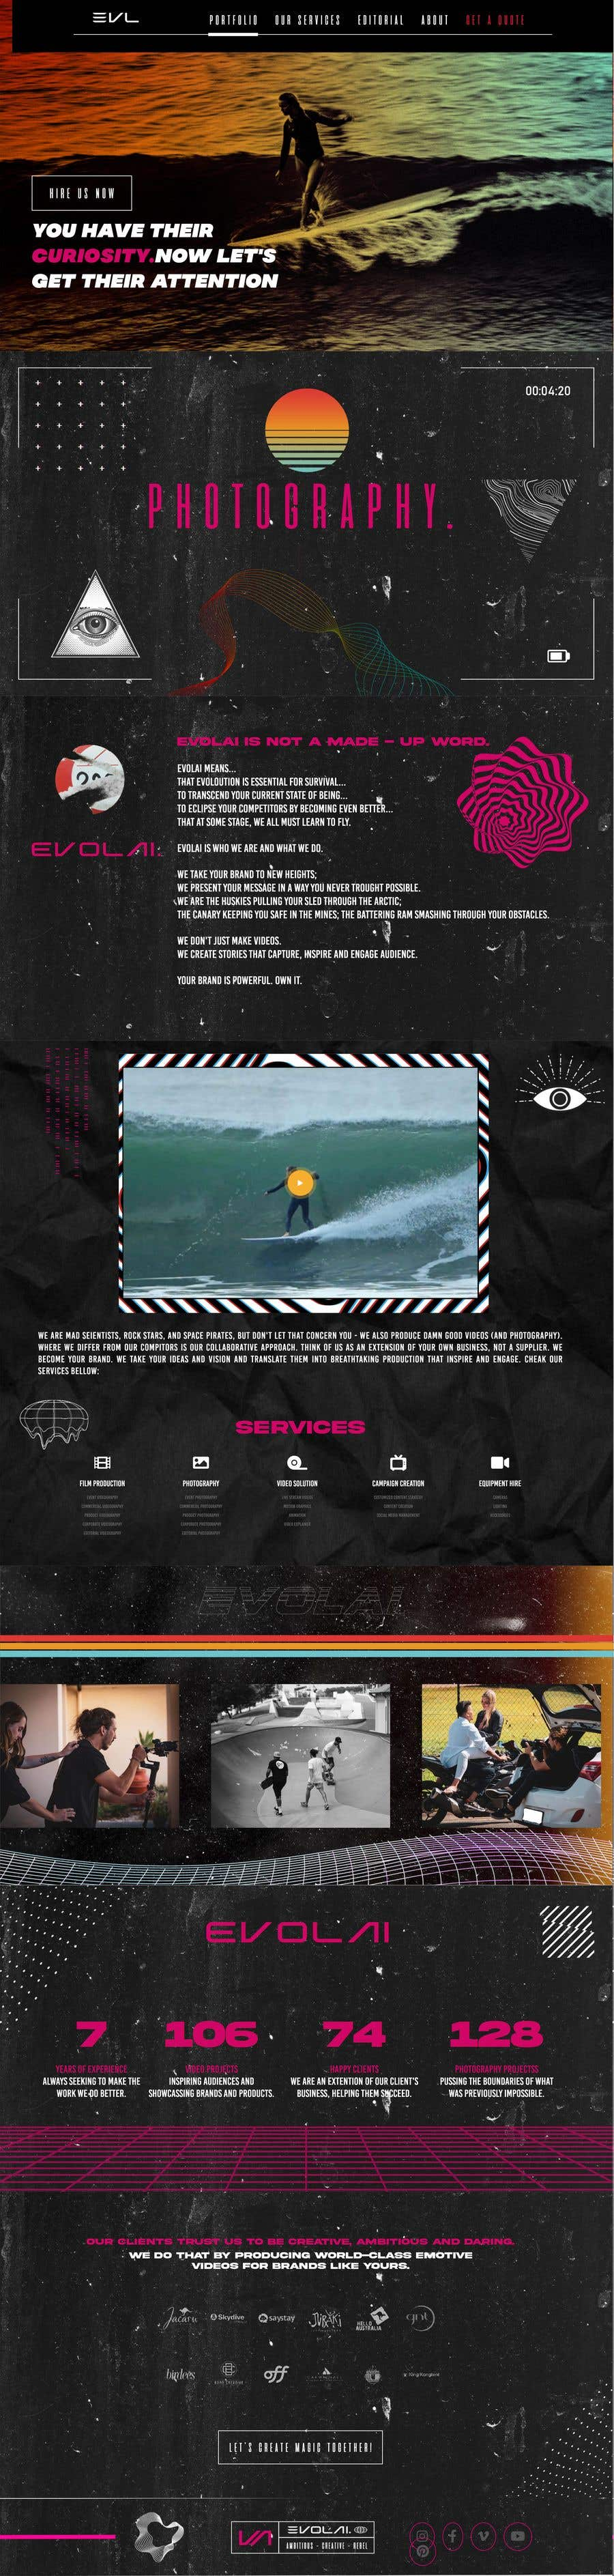 Contest Entry #                                        5                                      for                                         Web Page Design - redesign Services page for photography business